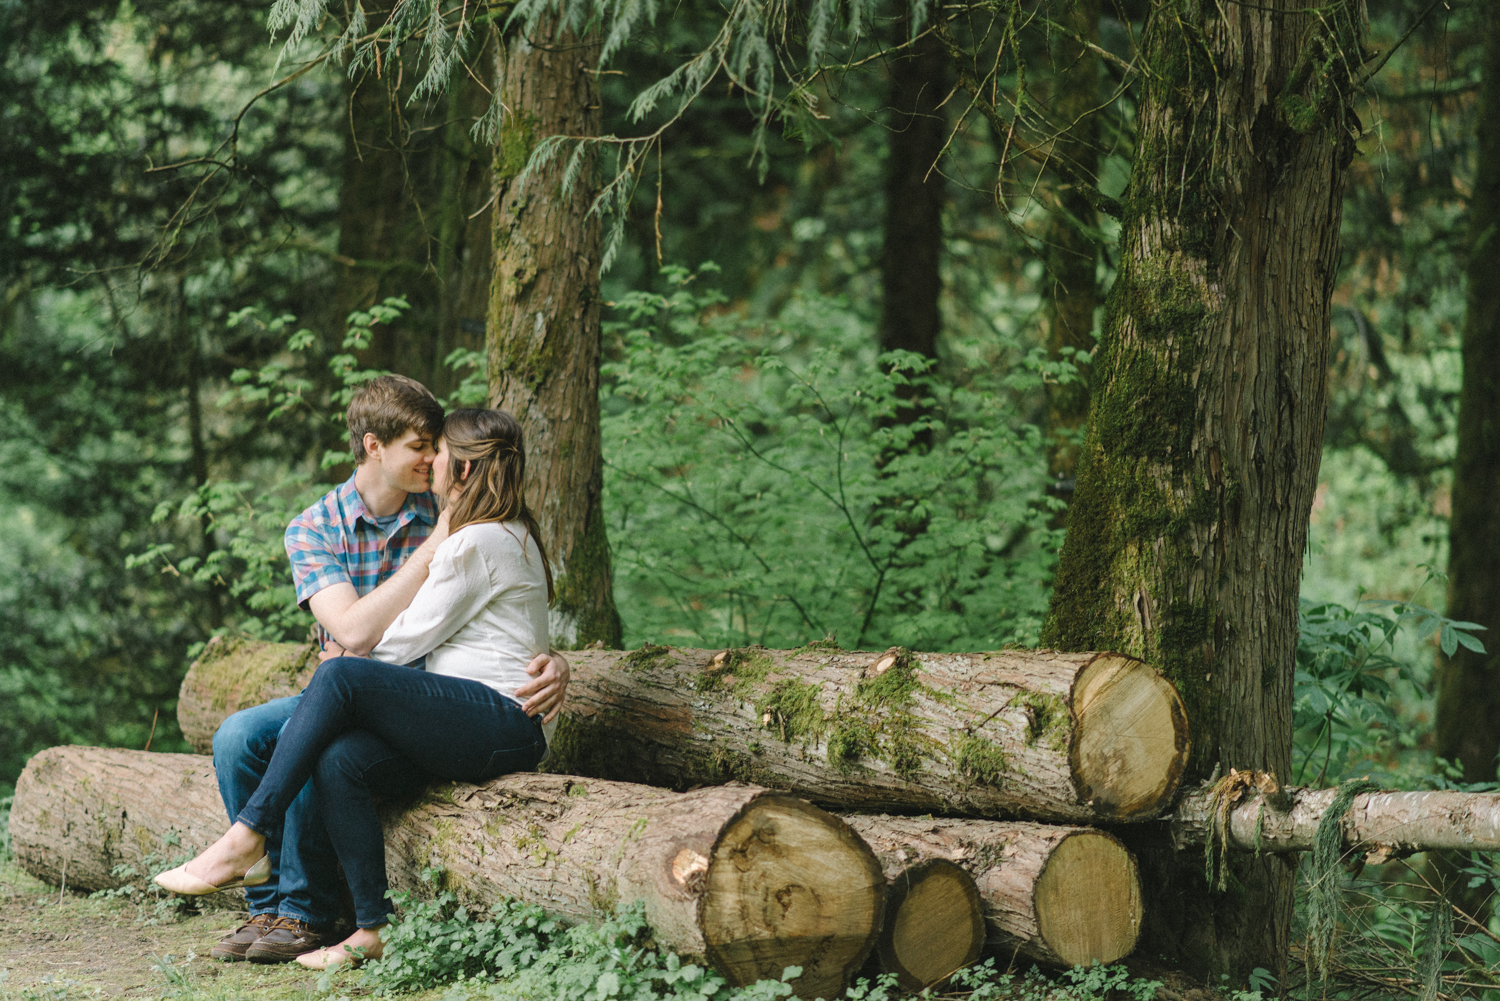 Portland-Oregon-Engagement-photographer-hoyt-arboretum-wedding-photography-shelley-marie-photo-wooden-logs-forest-14.jpg